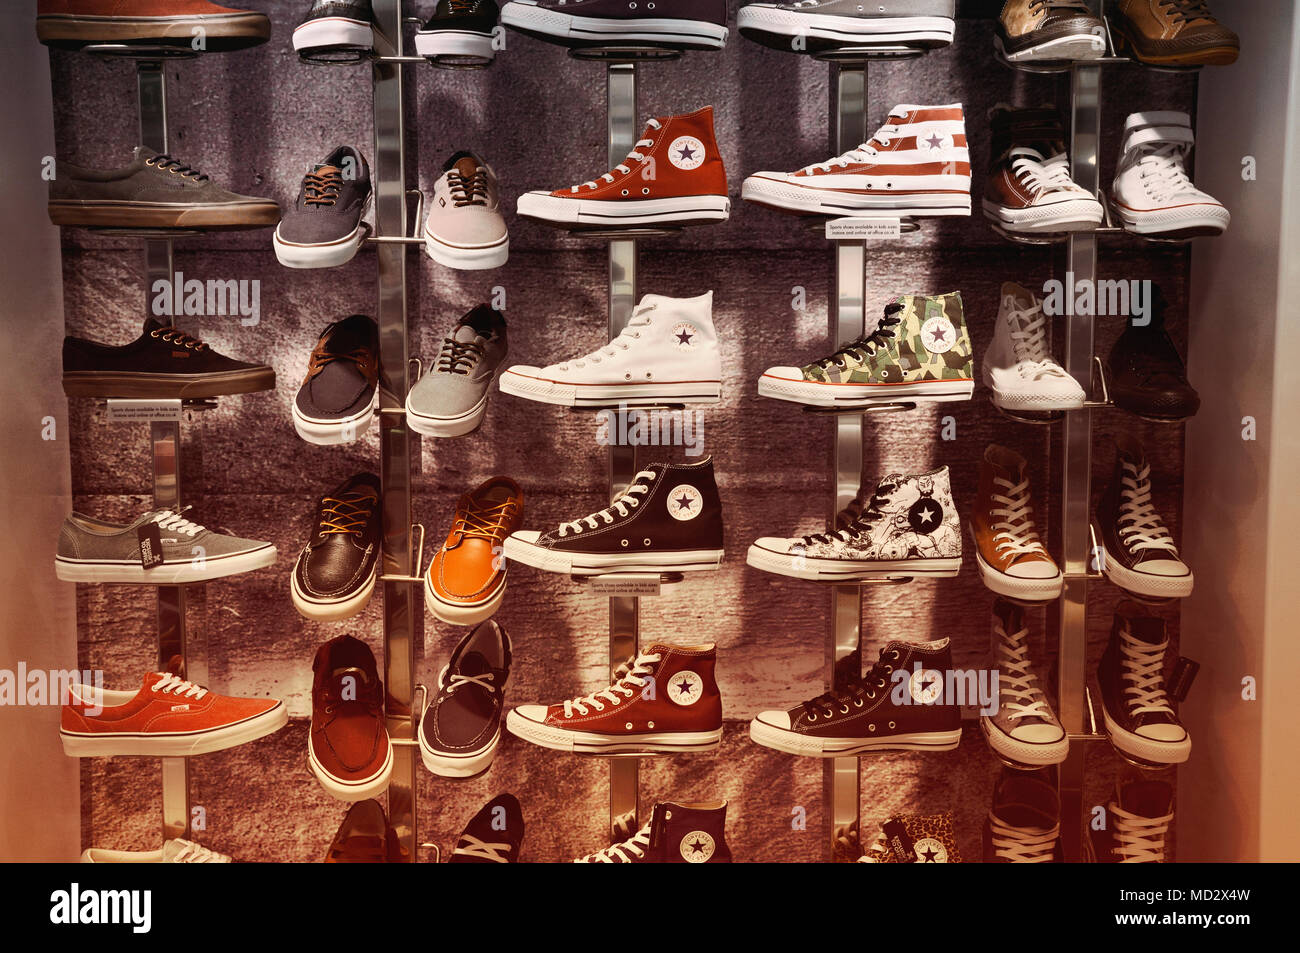 Converse instructores y Vans Shoes en la pantalla. Imagen De Stock